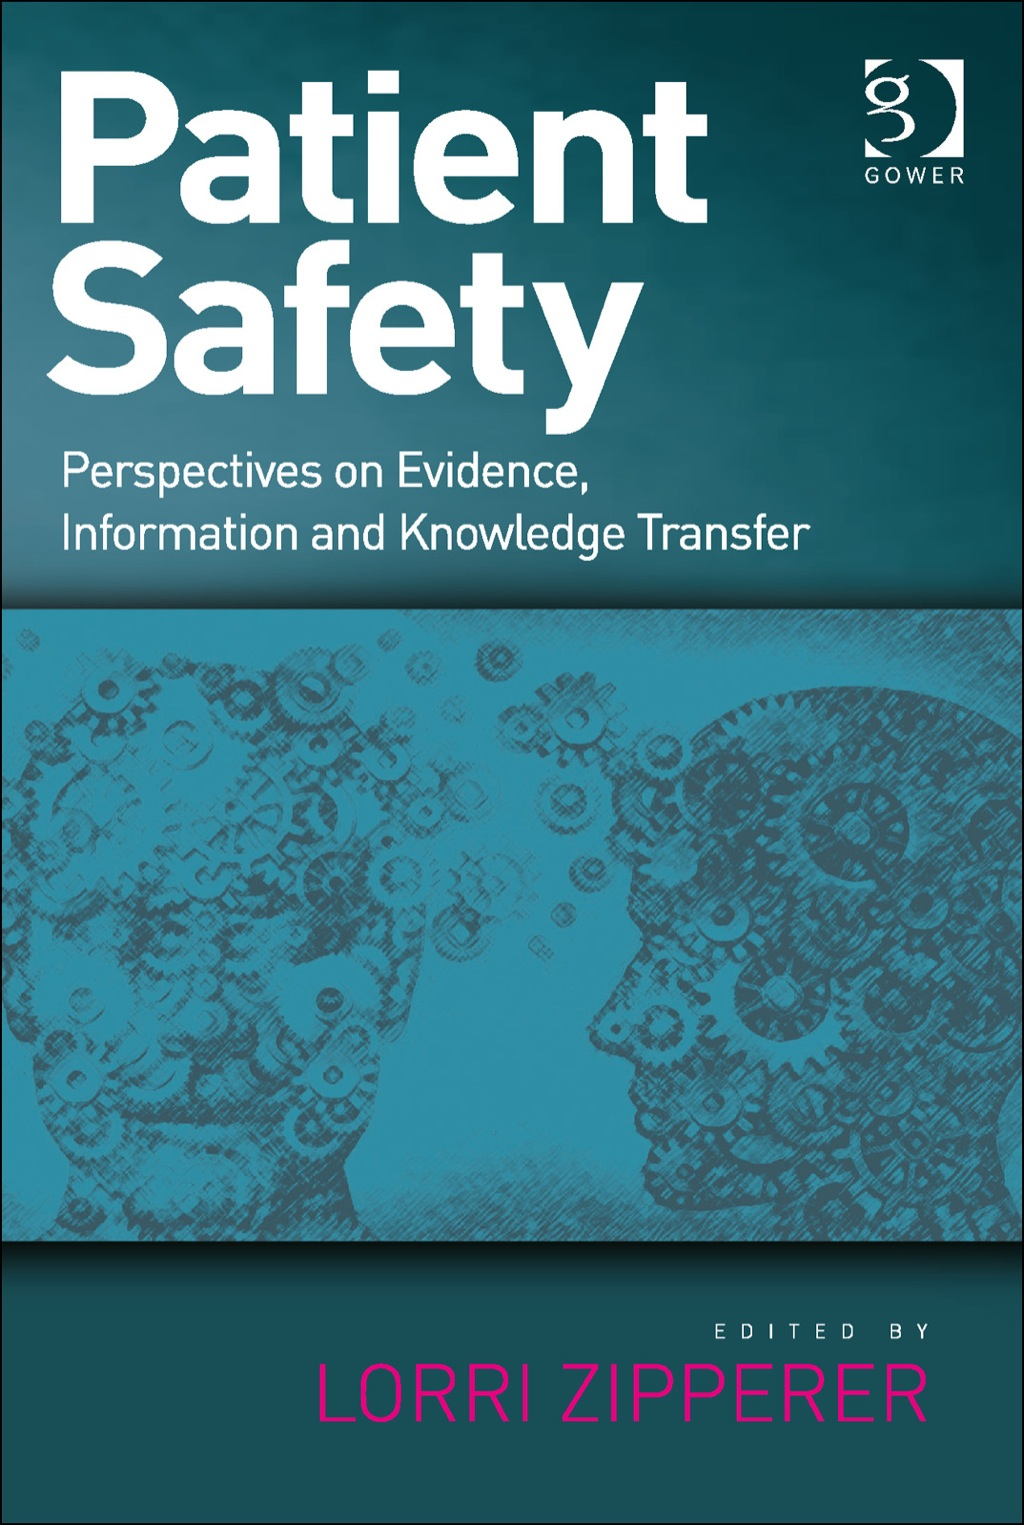 Patient Safety: Perspectives on Evidence  Information and Knowledge Transfer (eBook Rental)